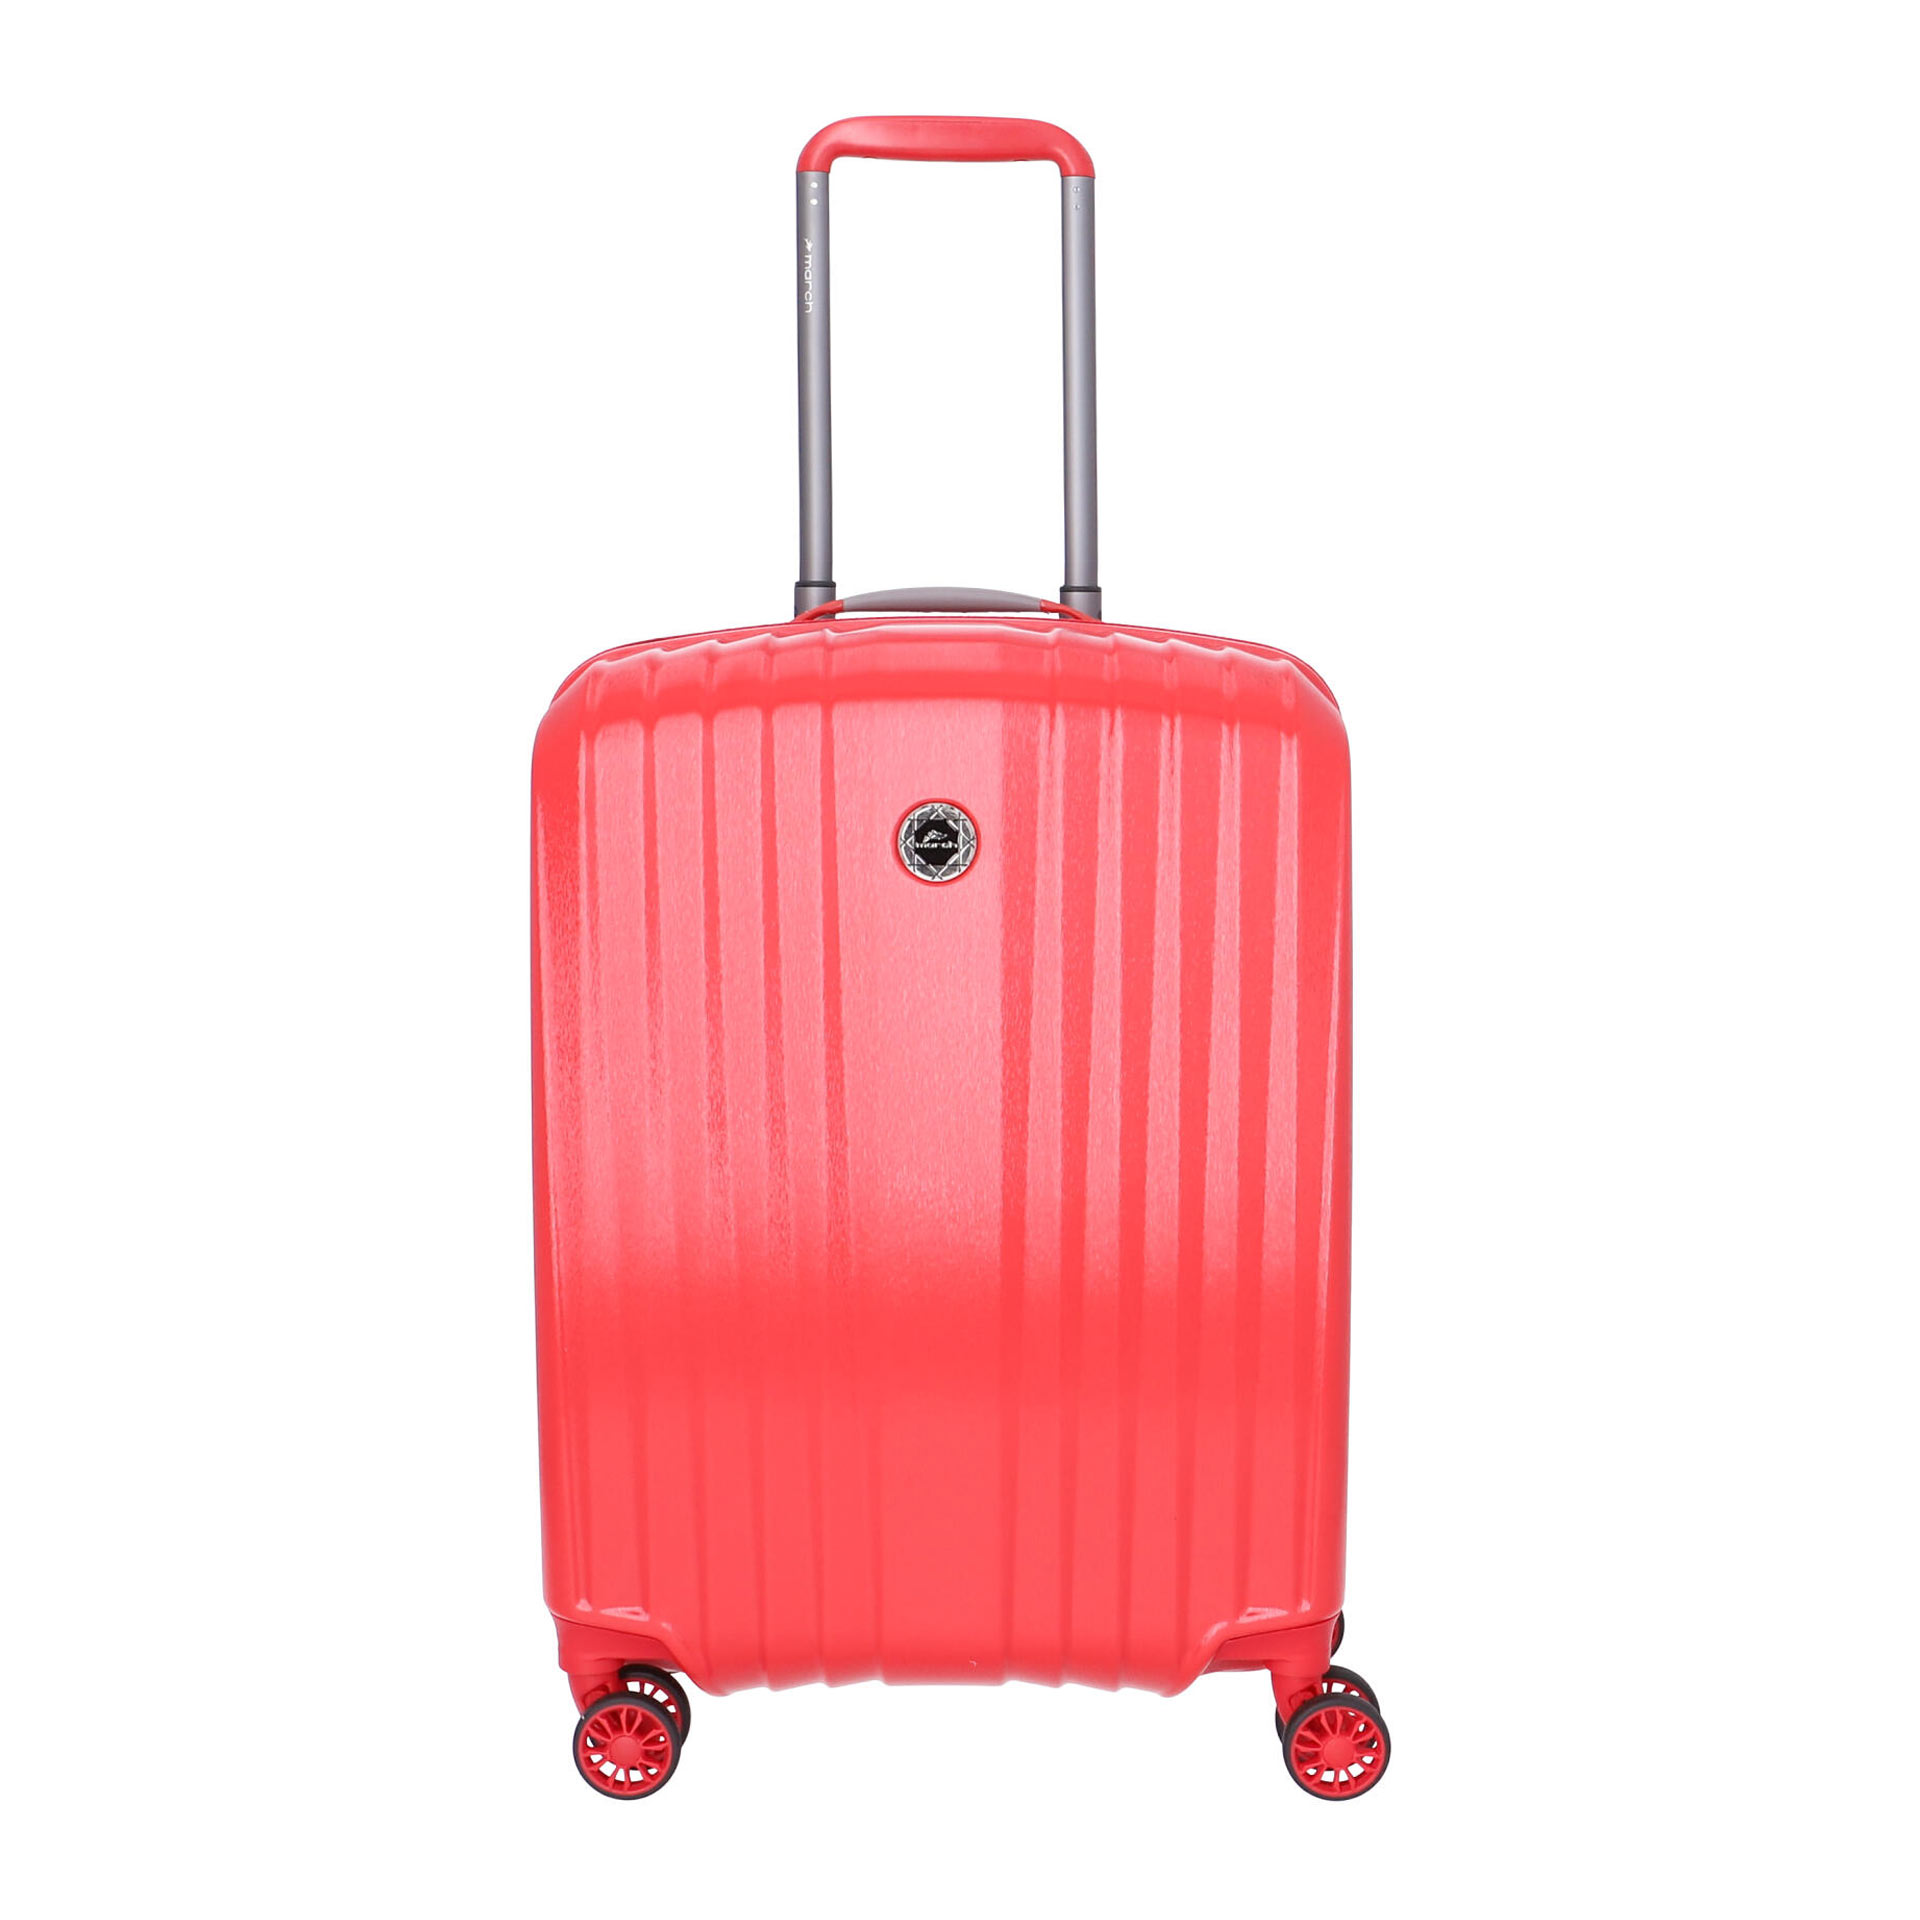 March Everest 4-Rad Trolley S red